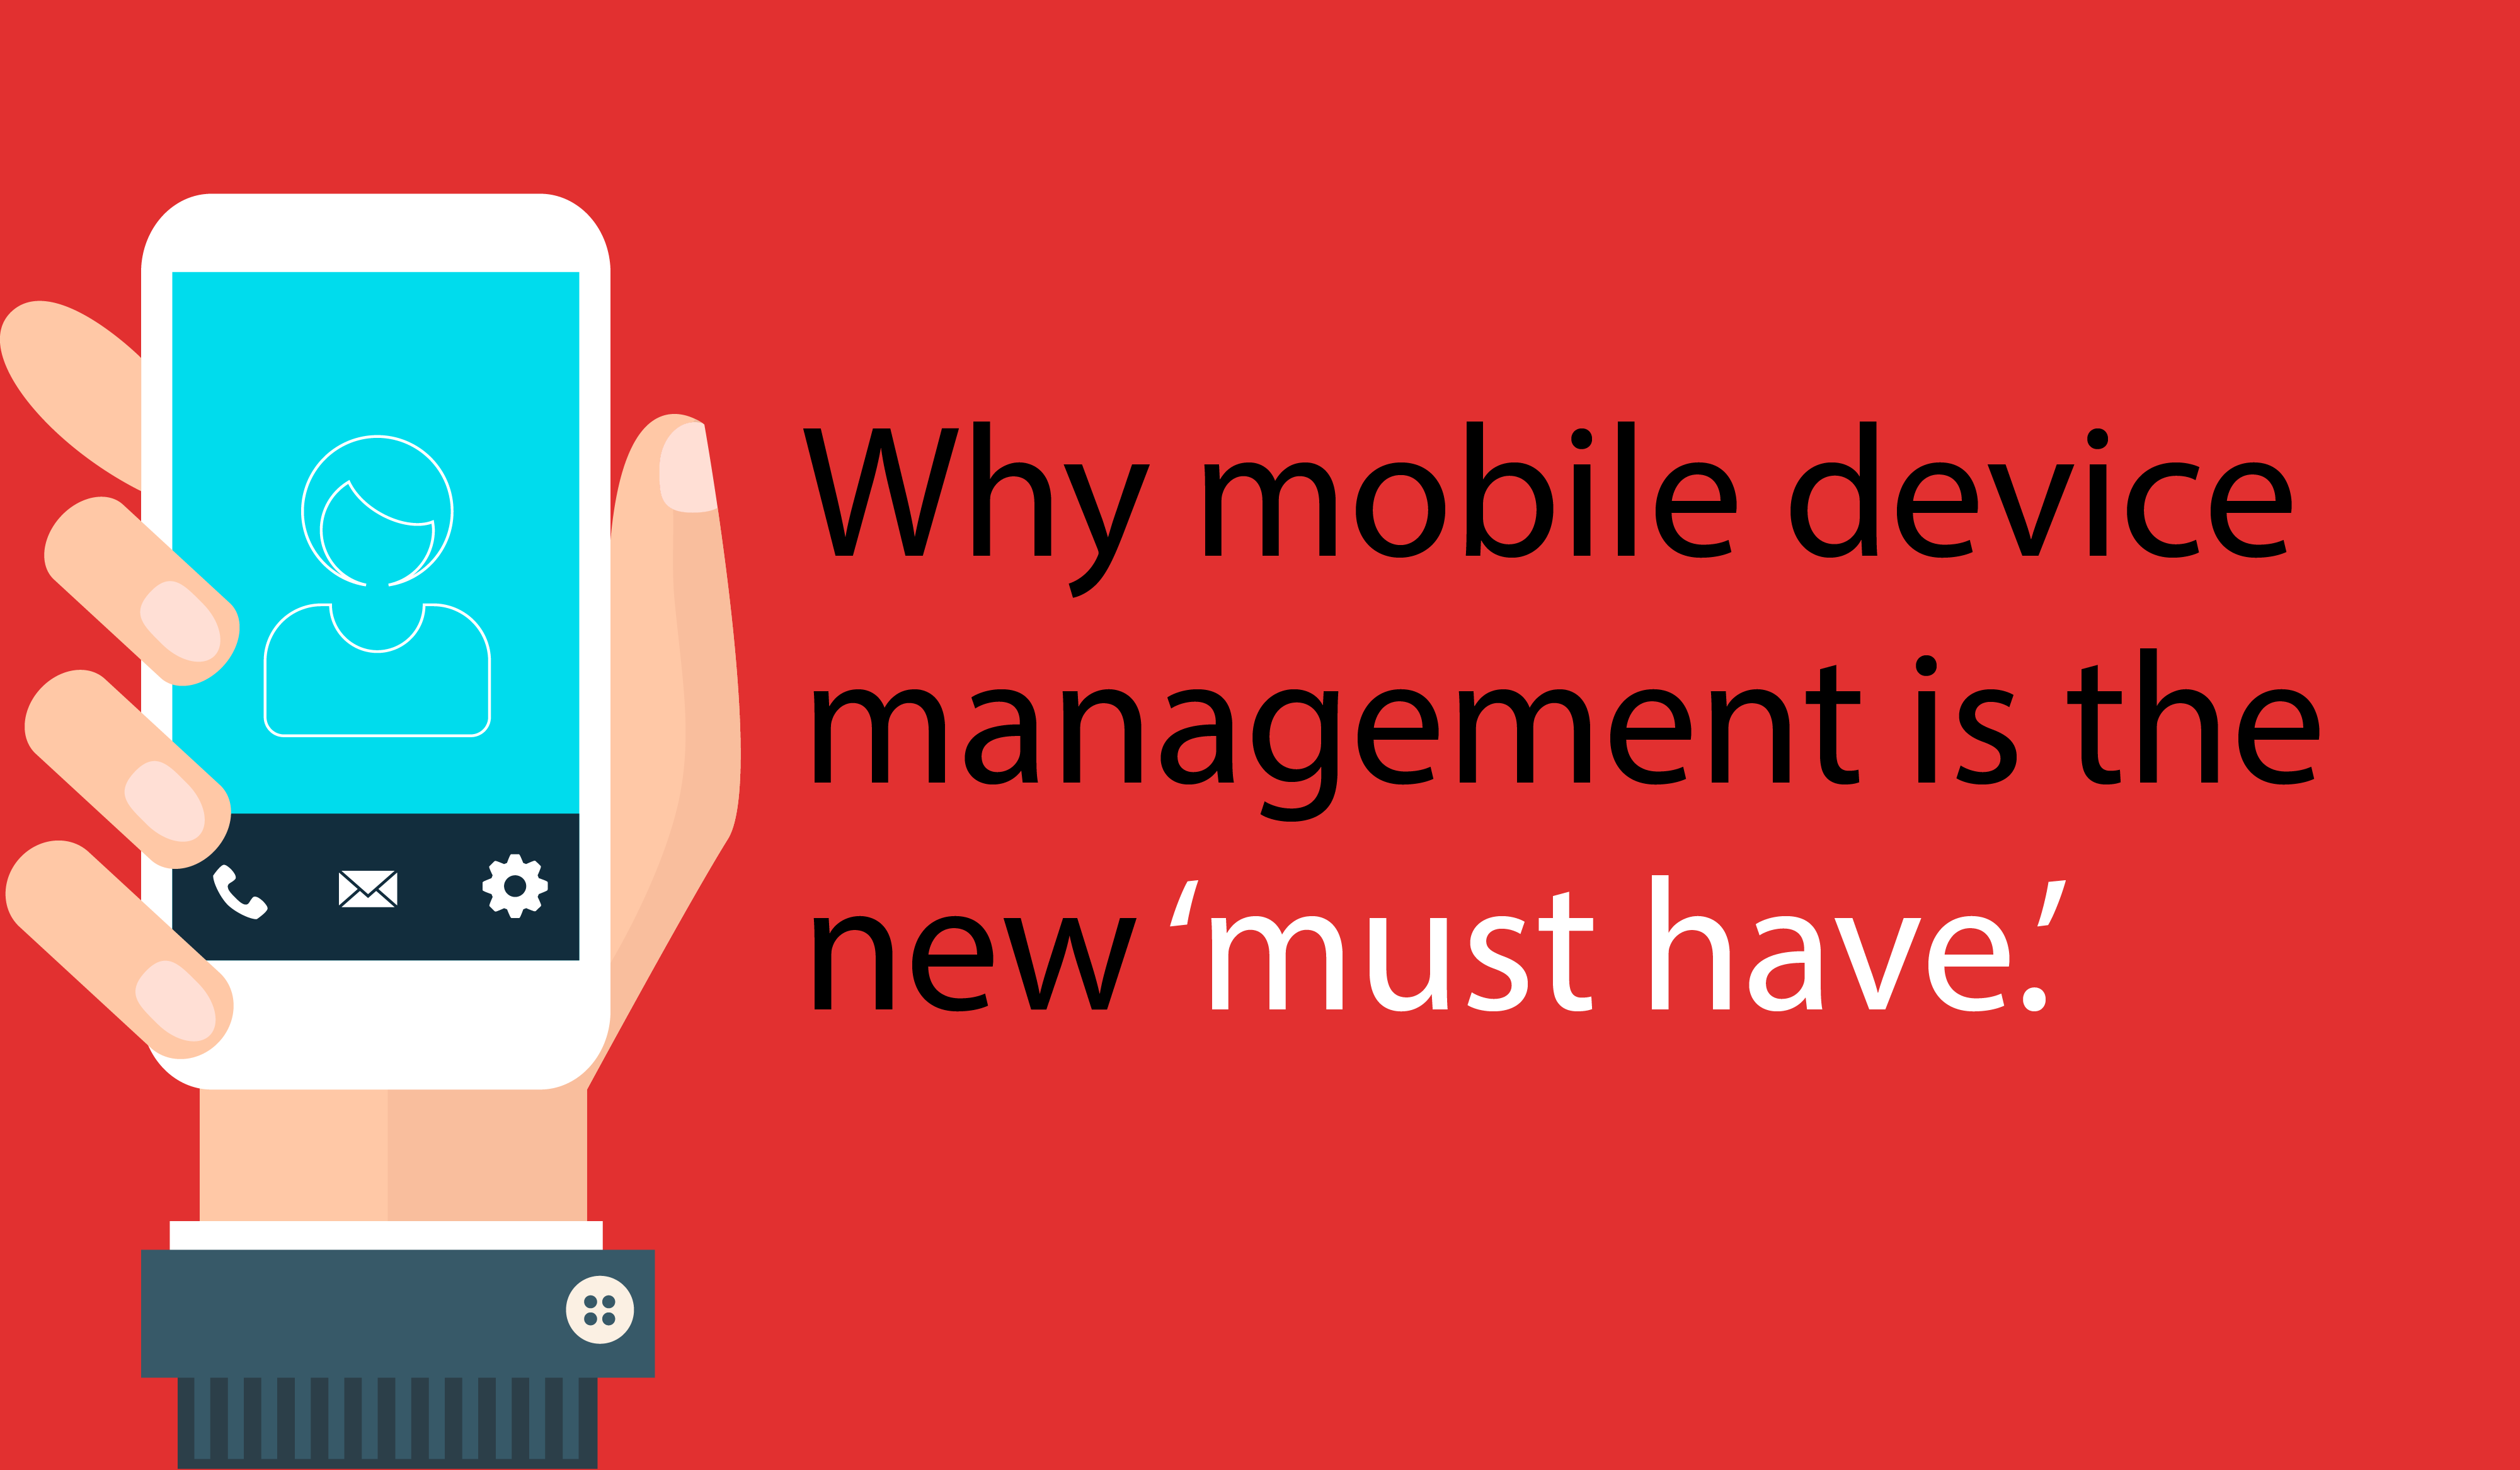 Why Mobile Device Management is the new must have